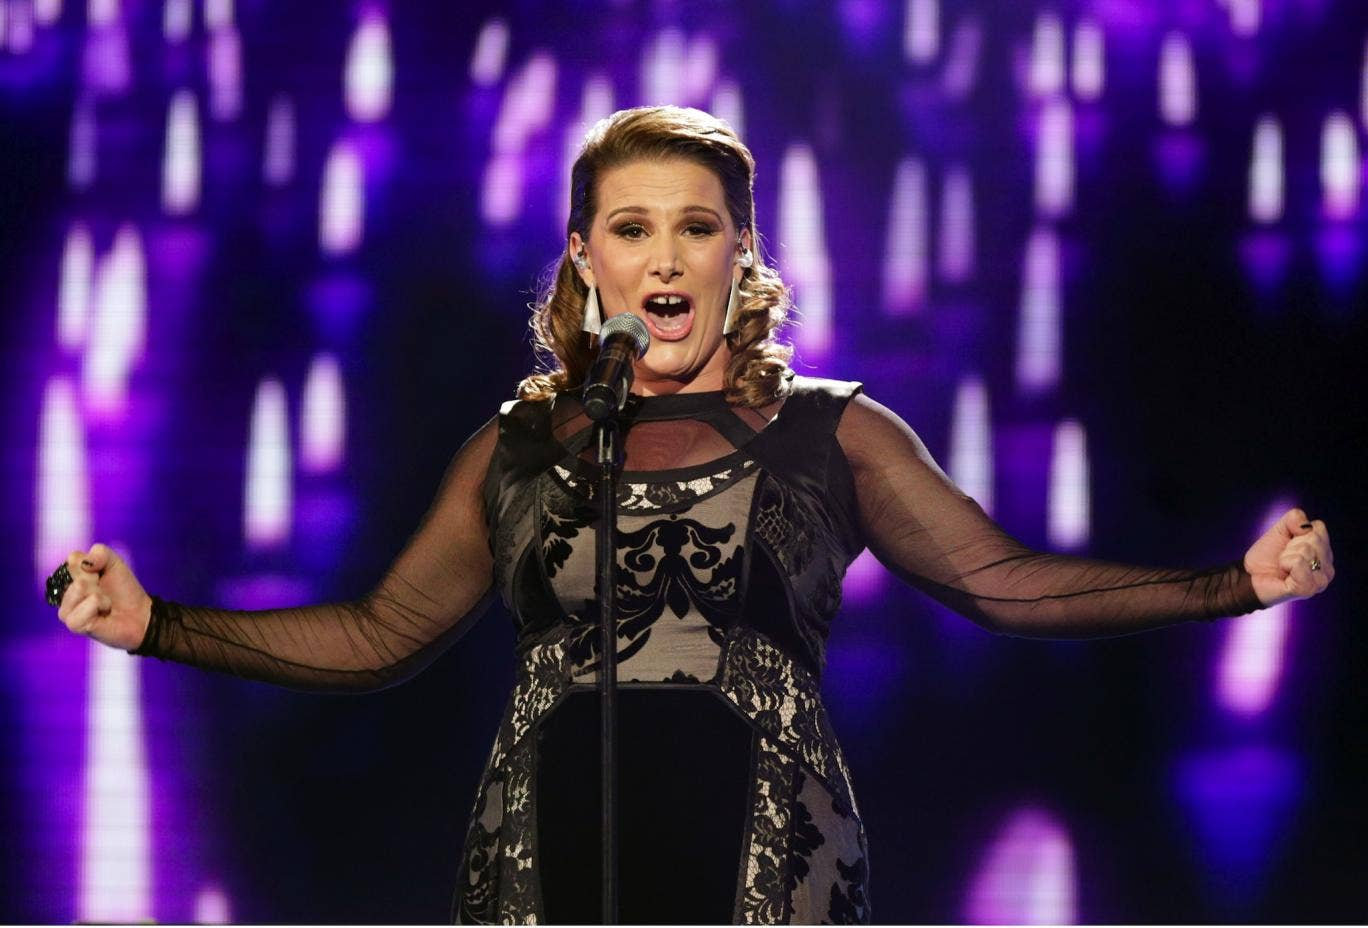 X Factor winner Sam Bailey is the latest star of the show to take the Christmas number one. But it wasn't always this way...